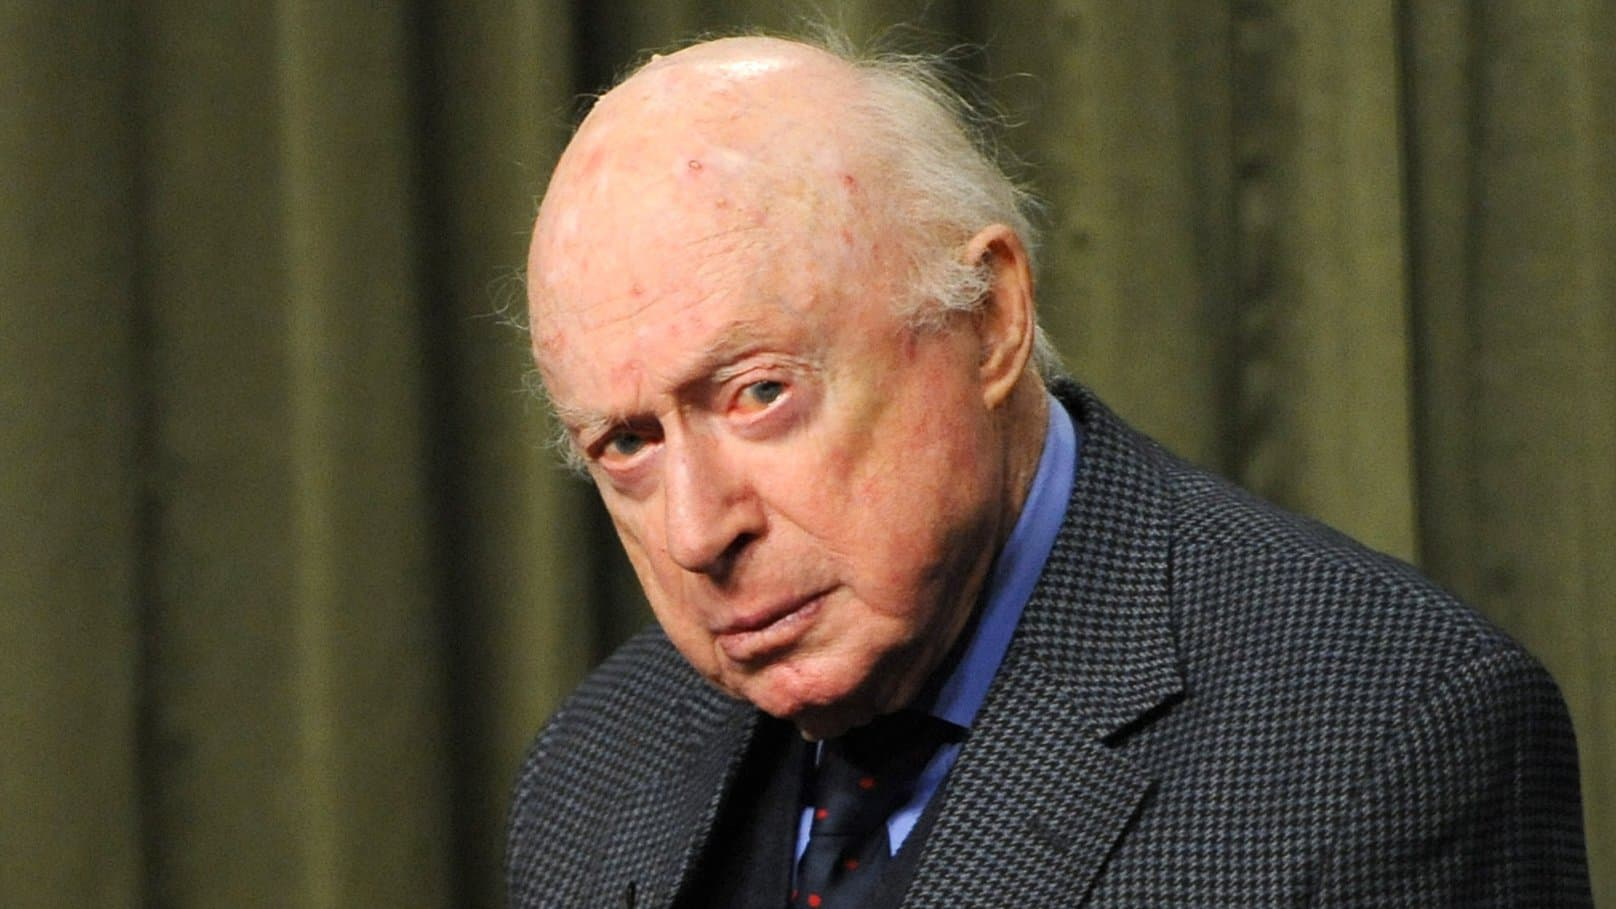 Death at 106 of Norman Lloyd actor in Alfred Hitchcock